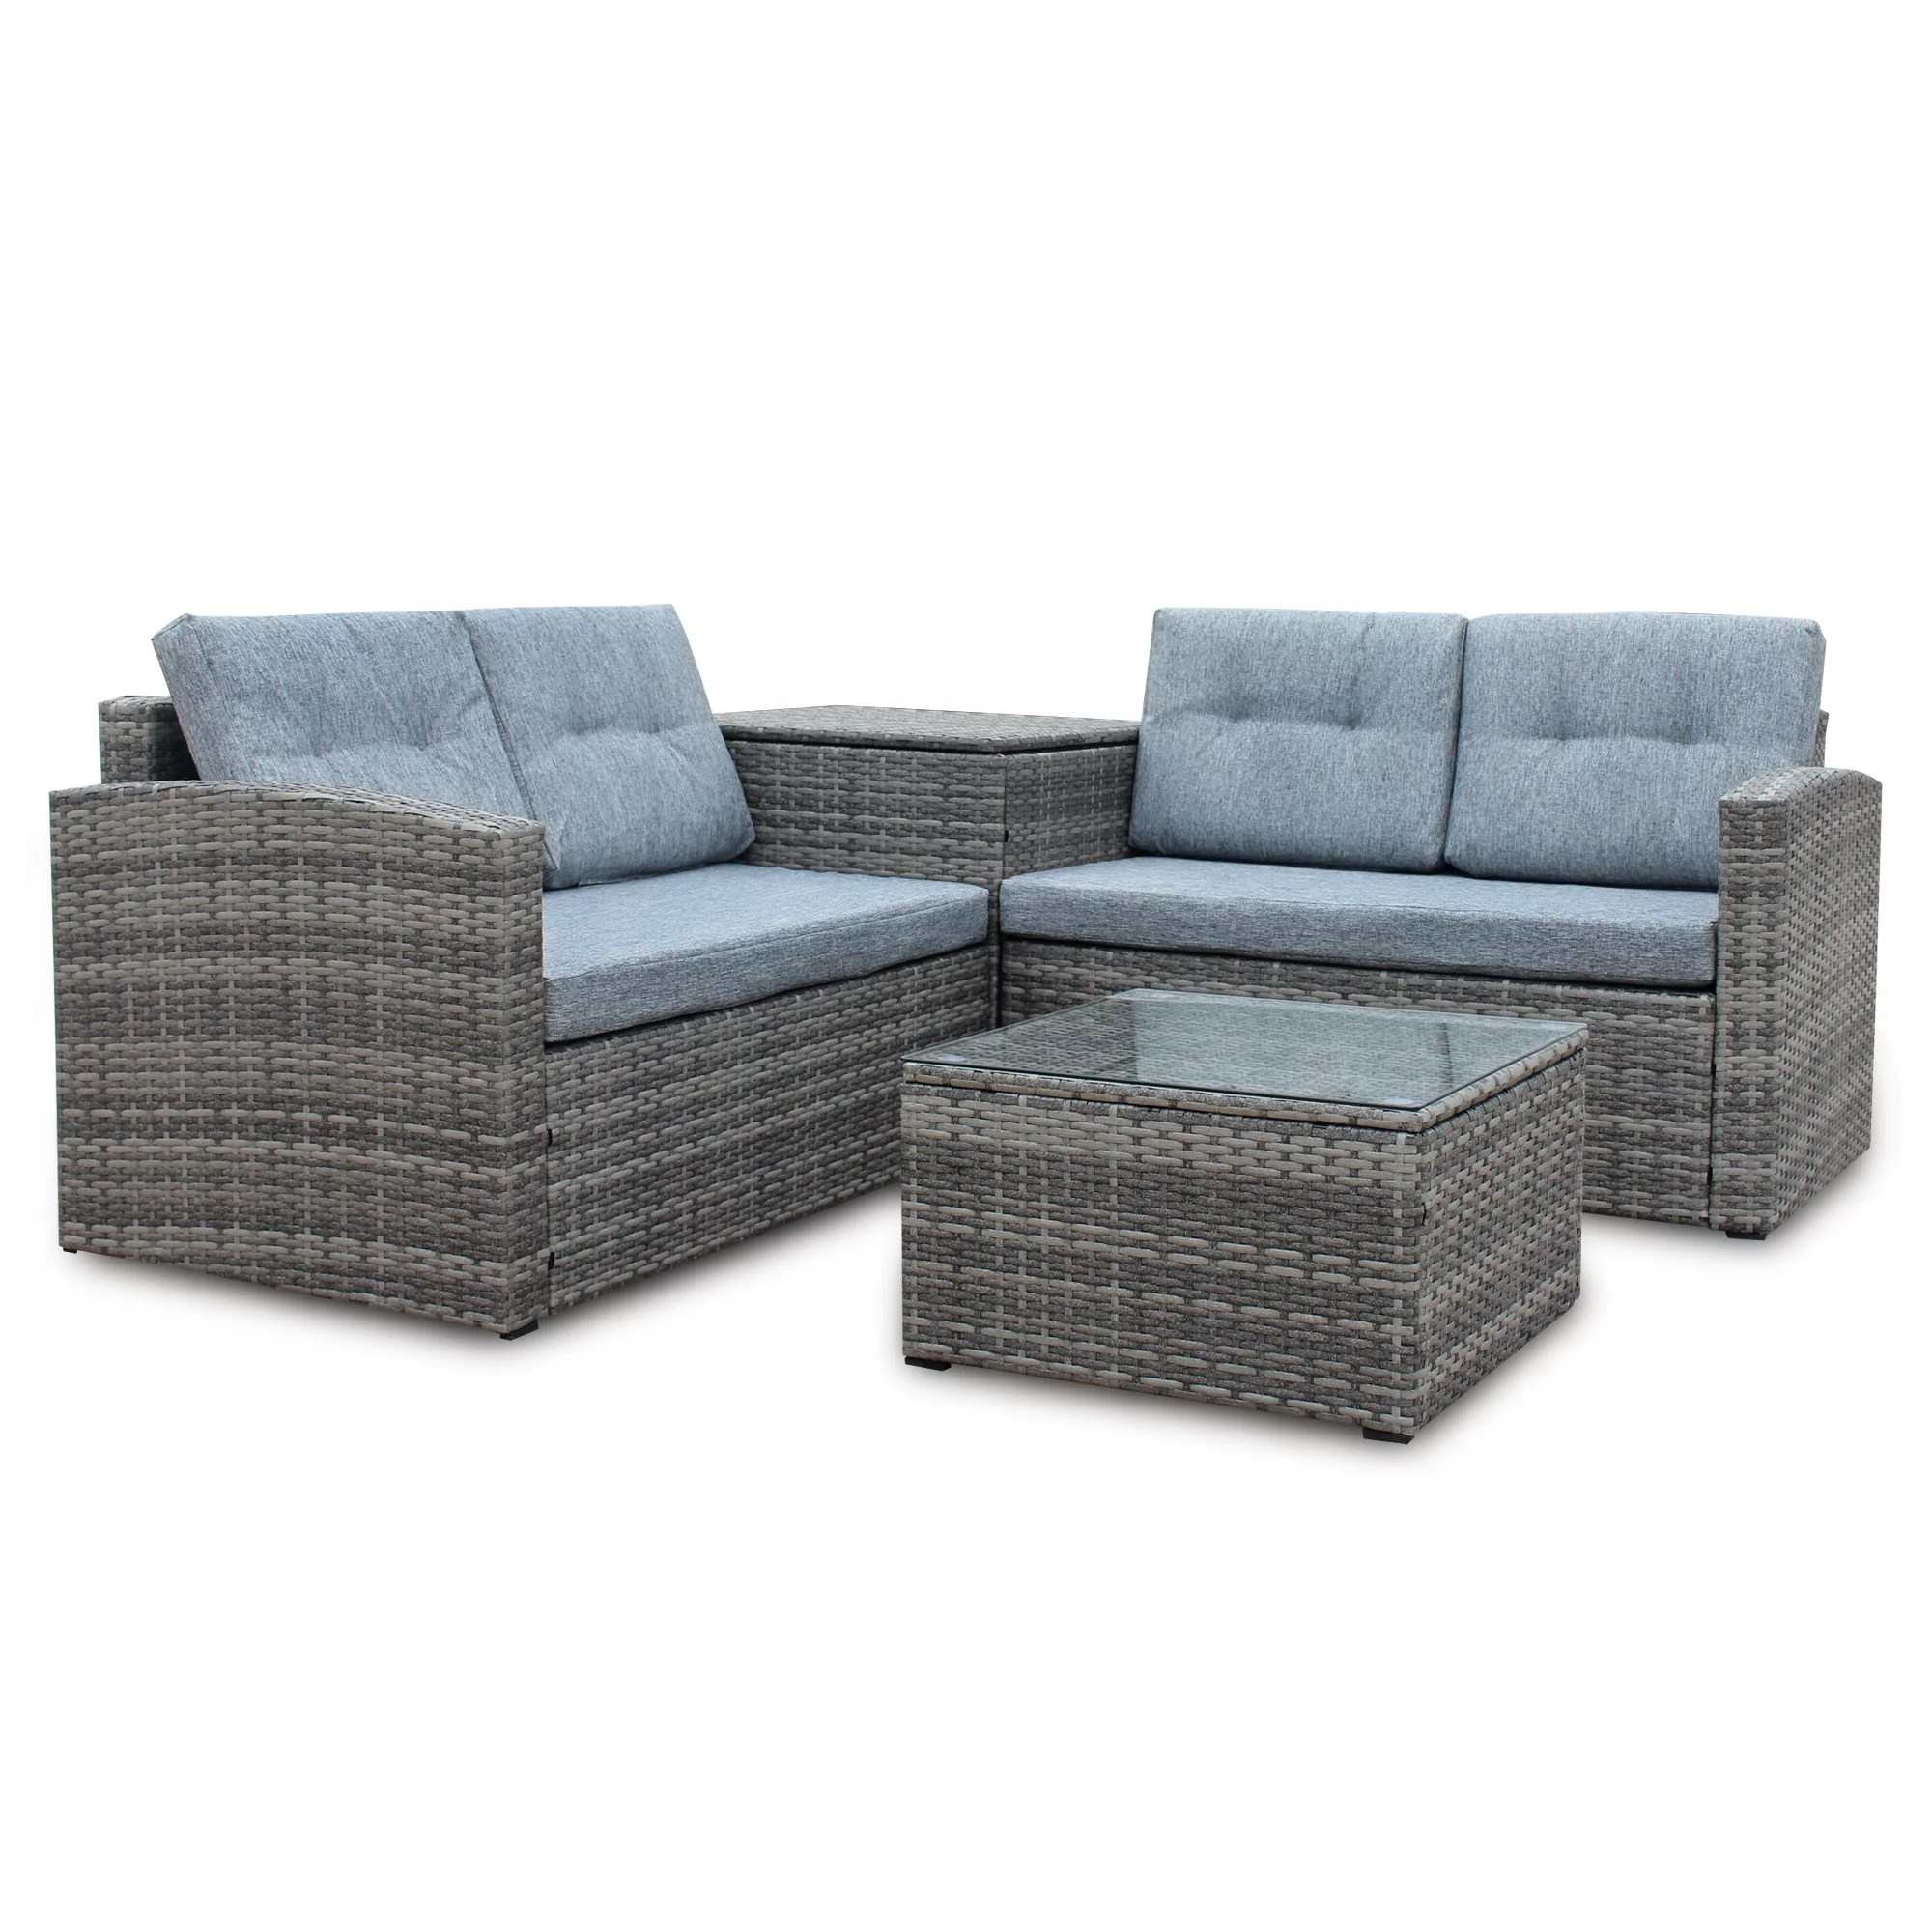 Clearance Outdoor Patio Furniture Sets Segmart 4 Pieces - Garden Furniture Clearance Plymouth